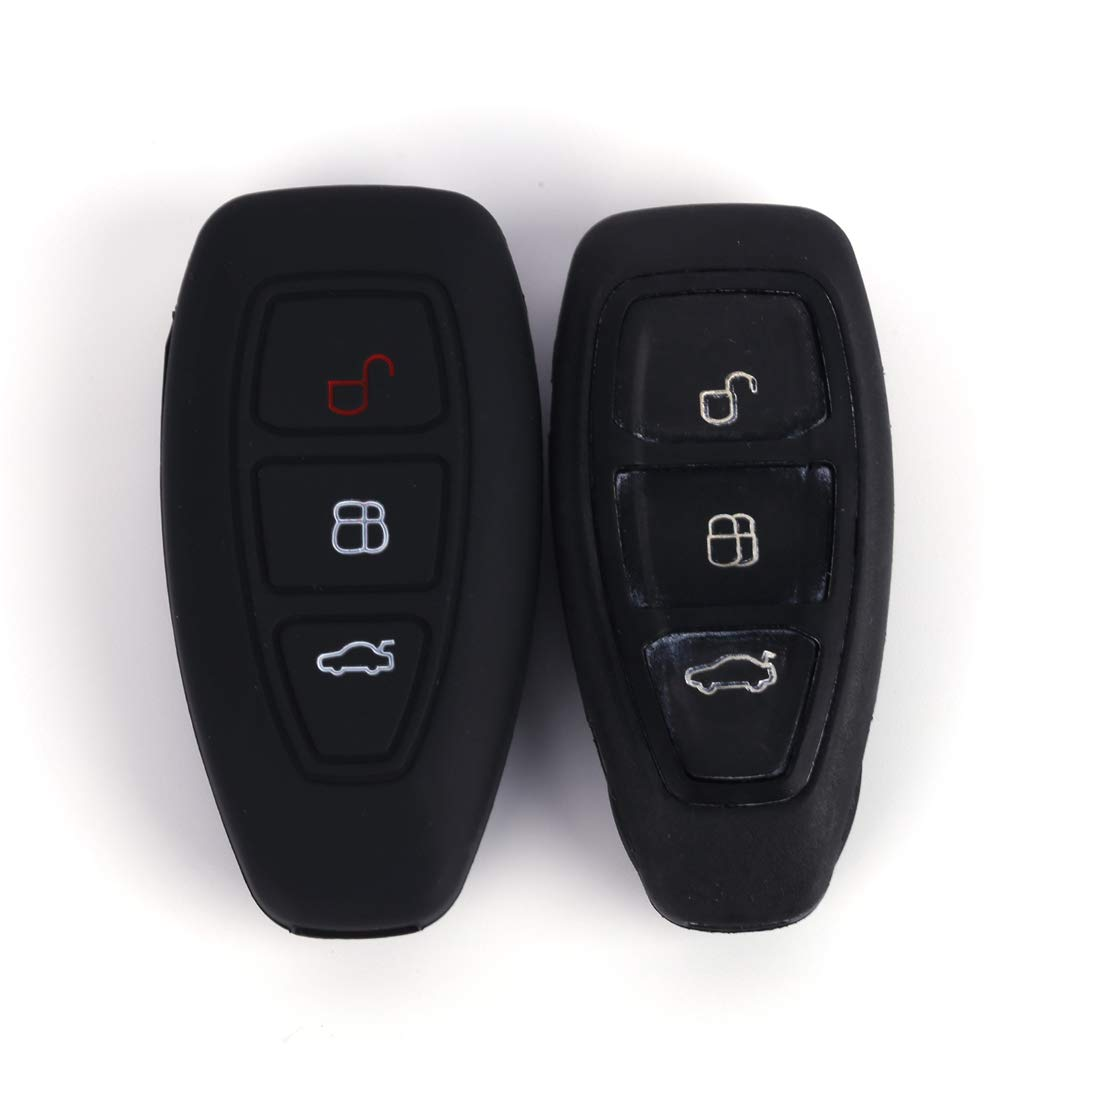 Black BE Remote Key Cover Silicone Car Key Case Keyless Entry Car for Ford Focus 3 Escape Fiesta ST Titanium Mondeo Ecosport Kuga MK3 3 Buttons